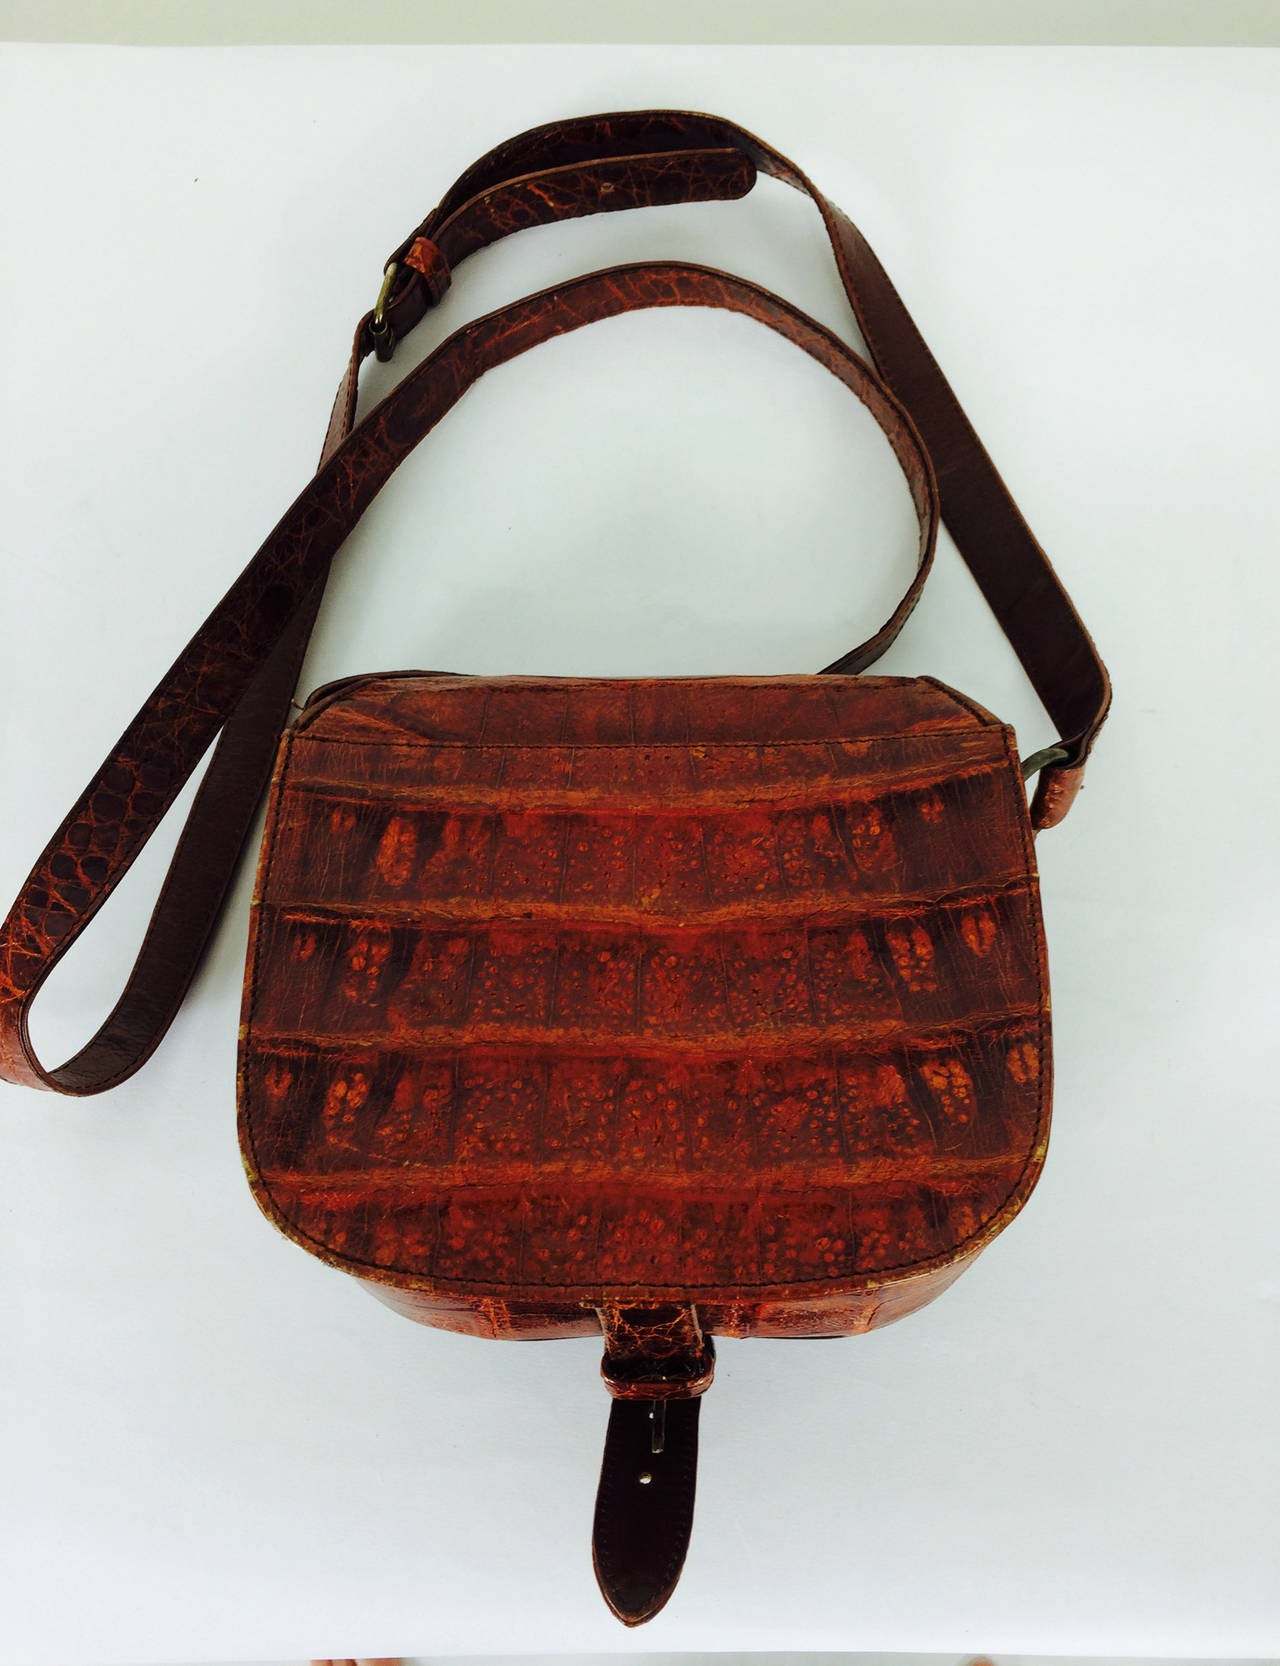 Saddle bag handbag cognac leather faux alligator Neiman Marcus 1980s In Excellent Condition For Sale In West Palm Beach, FL